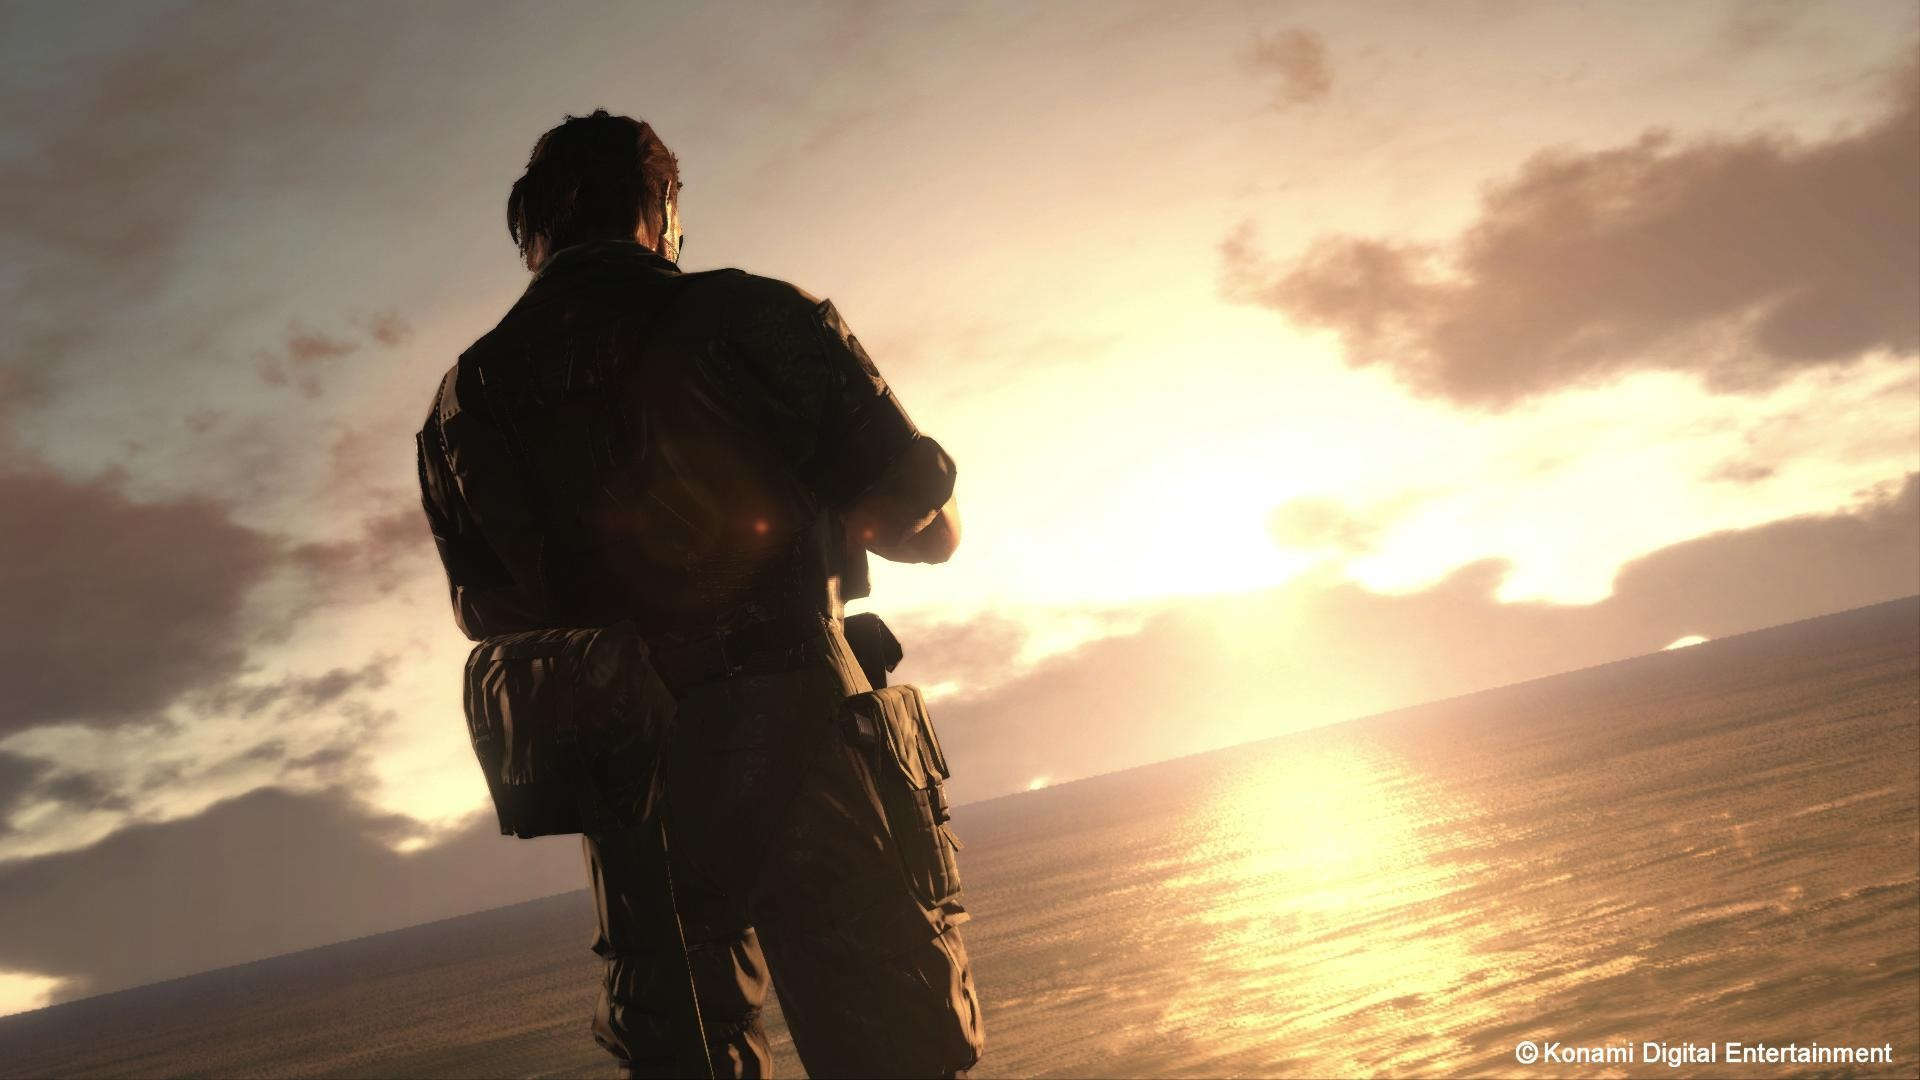 mgsv the phantom pain wallpaper images pictures becuo